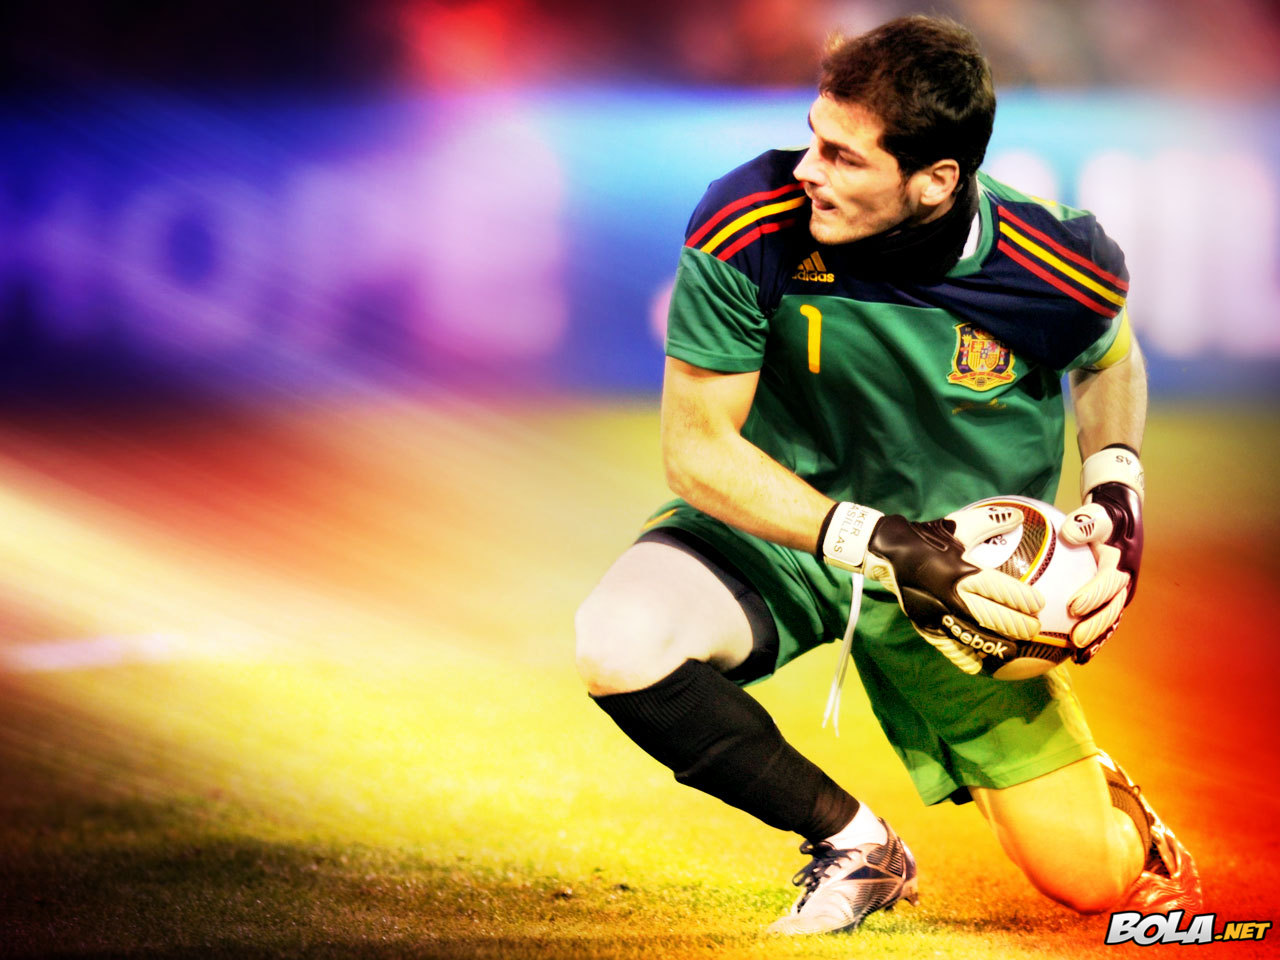 http://2.bp.blogspot.com/-E5PQLSymJaM/UOHUHbwAciI/AAAAAAAAOCk/bO5p5GFD0dU/s1600/Iker+Casillas+2013+Wallpapers+HD+Real+Madrid+Spain.jpg